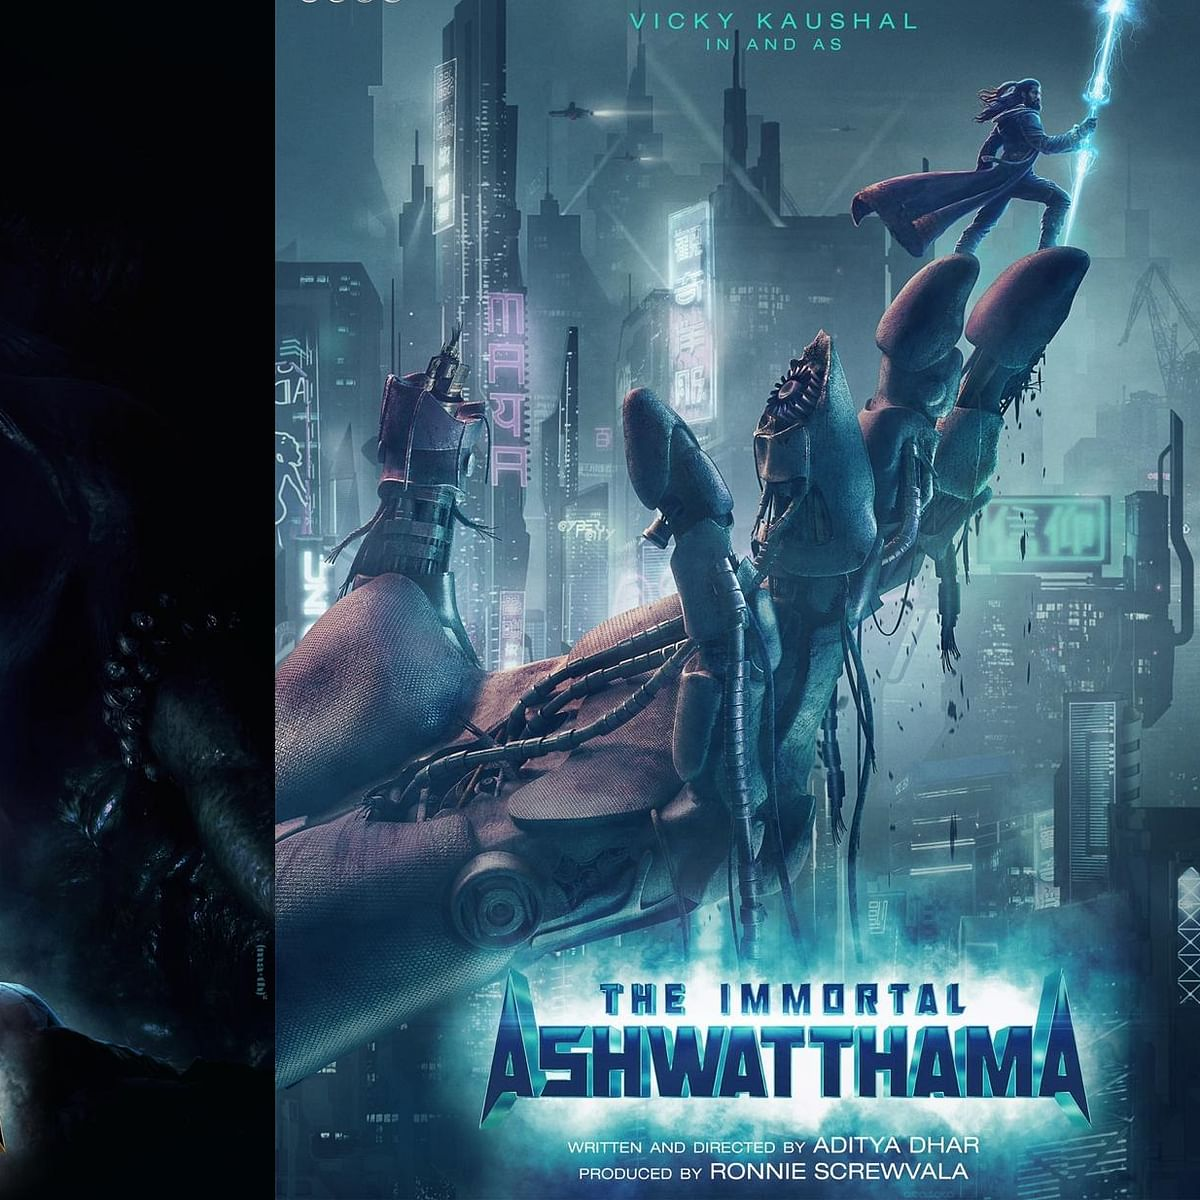 First Look: Vicky Kaushal reunites with 'Uri' director for 'The Immortal Ashwatthama'